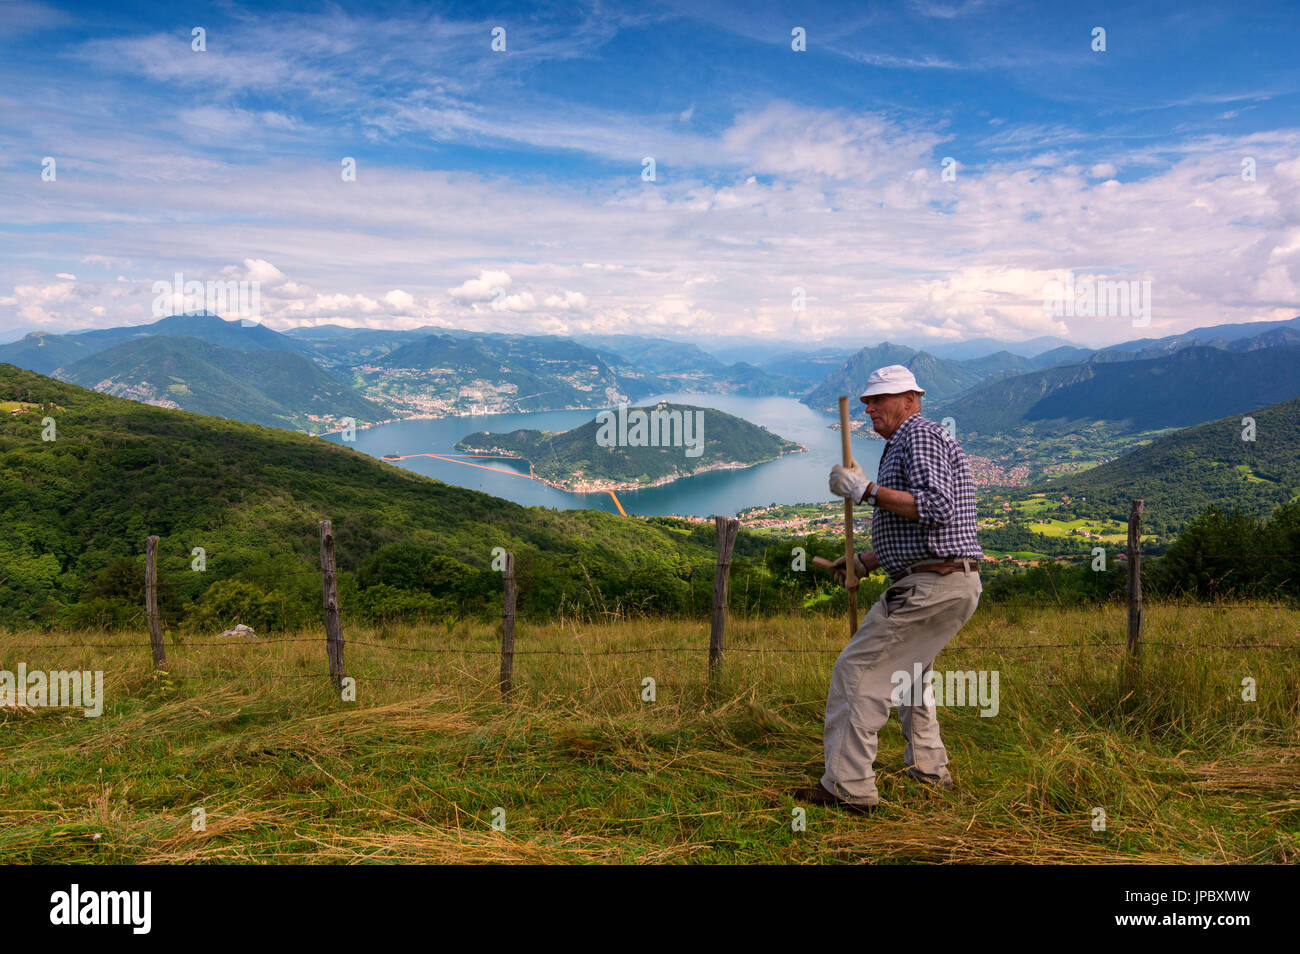 Europe, Italy, farmer in the hills of Lake Iseo, province of Brescia. - Stock Image